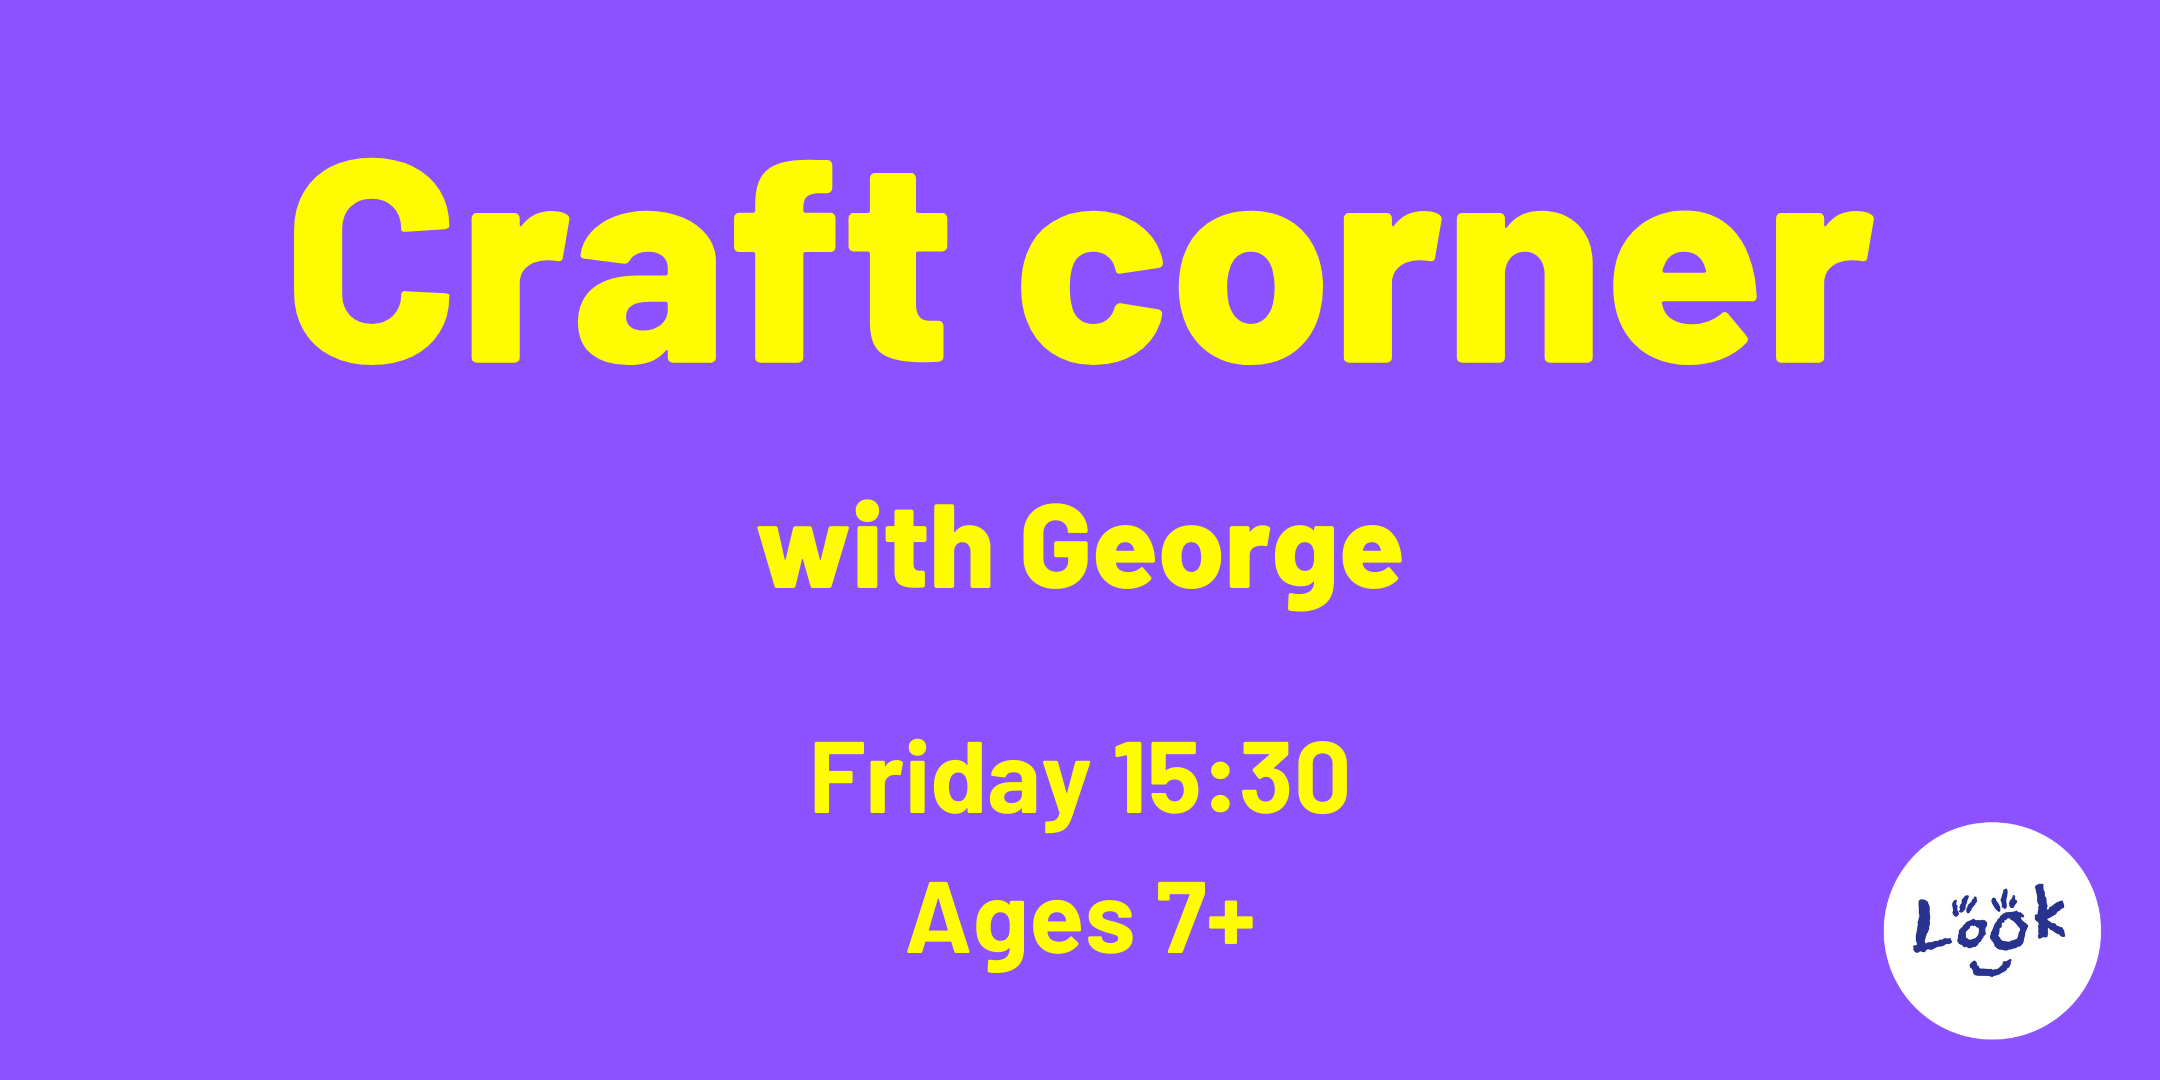 Purple background, yellow text reads: Craft Corner with George. Friday 15:30 Ages 7+